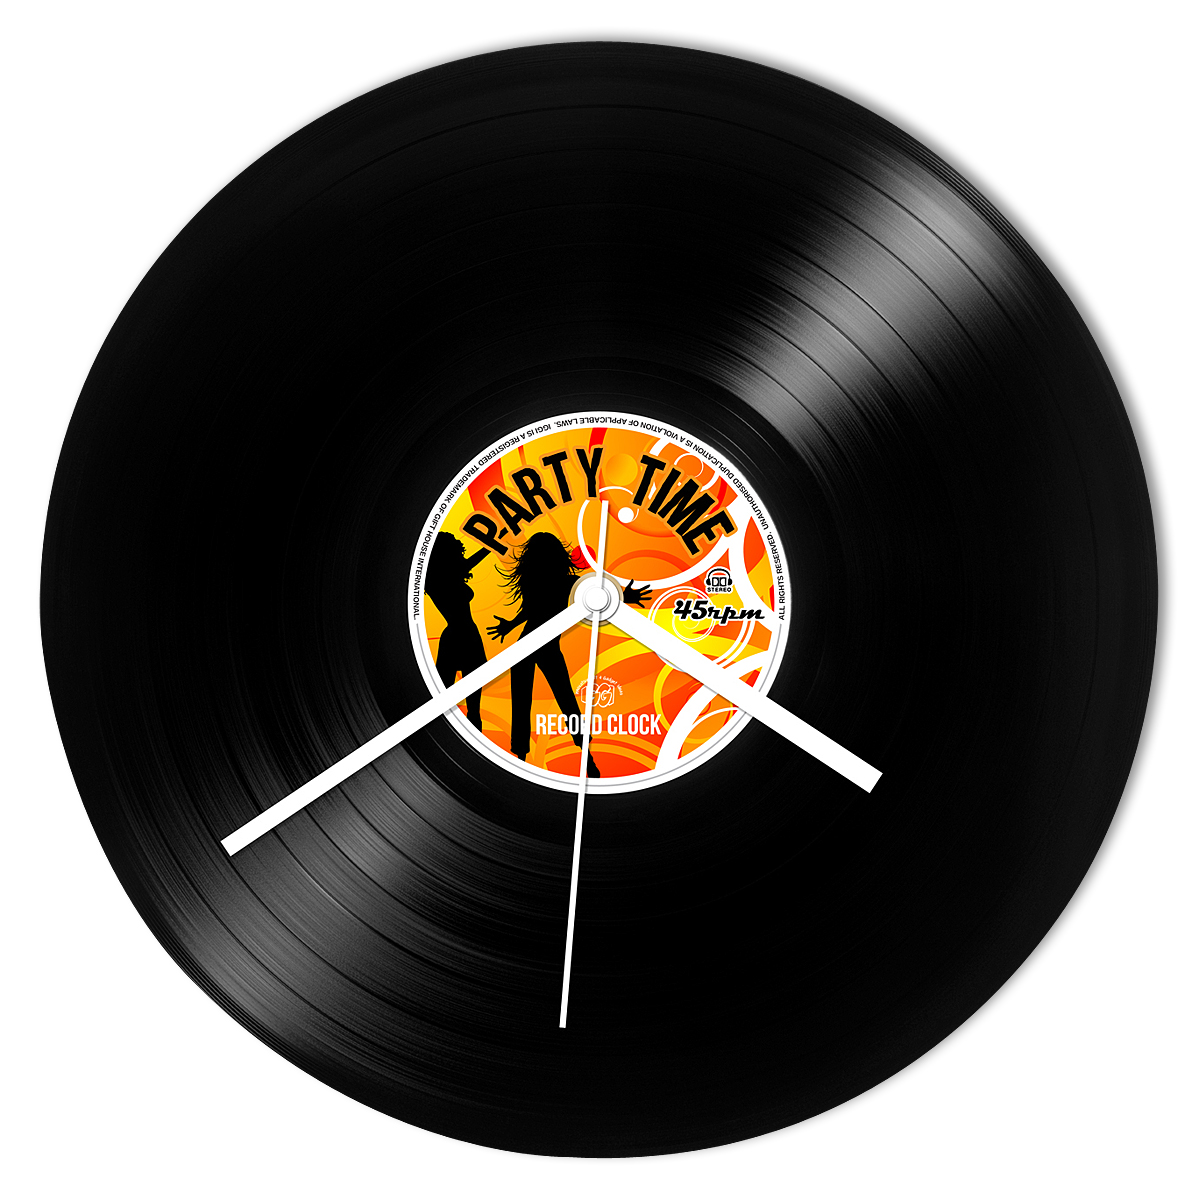 Schallplatten Deko Wand Wanduhr Vinyl Schallplatte Party Time Retro Record Clock